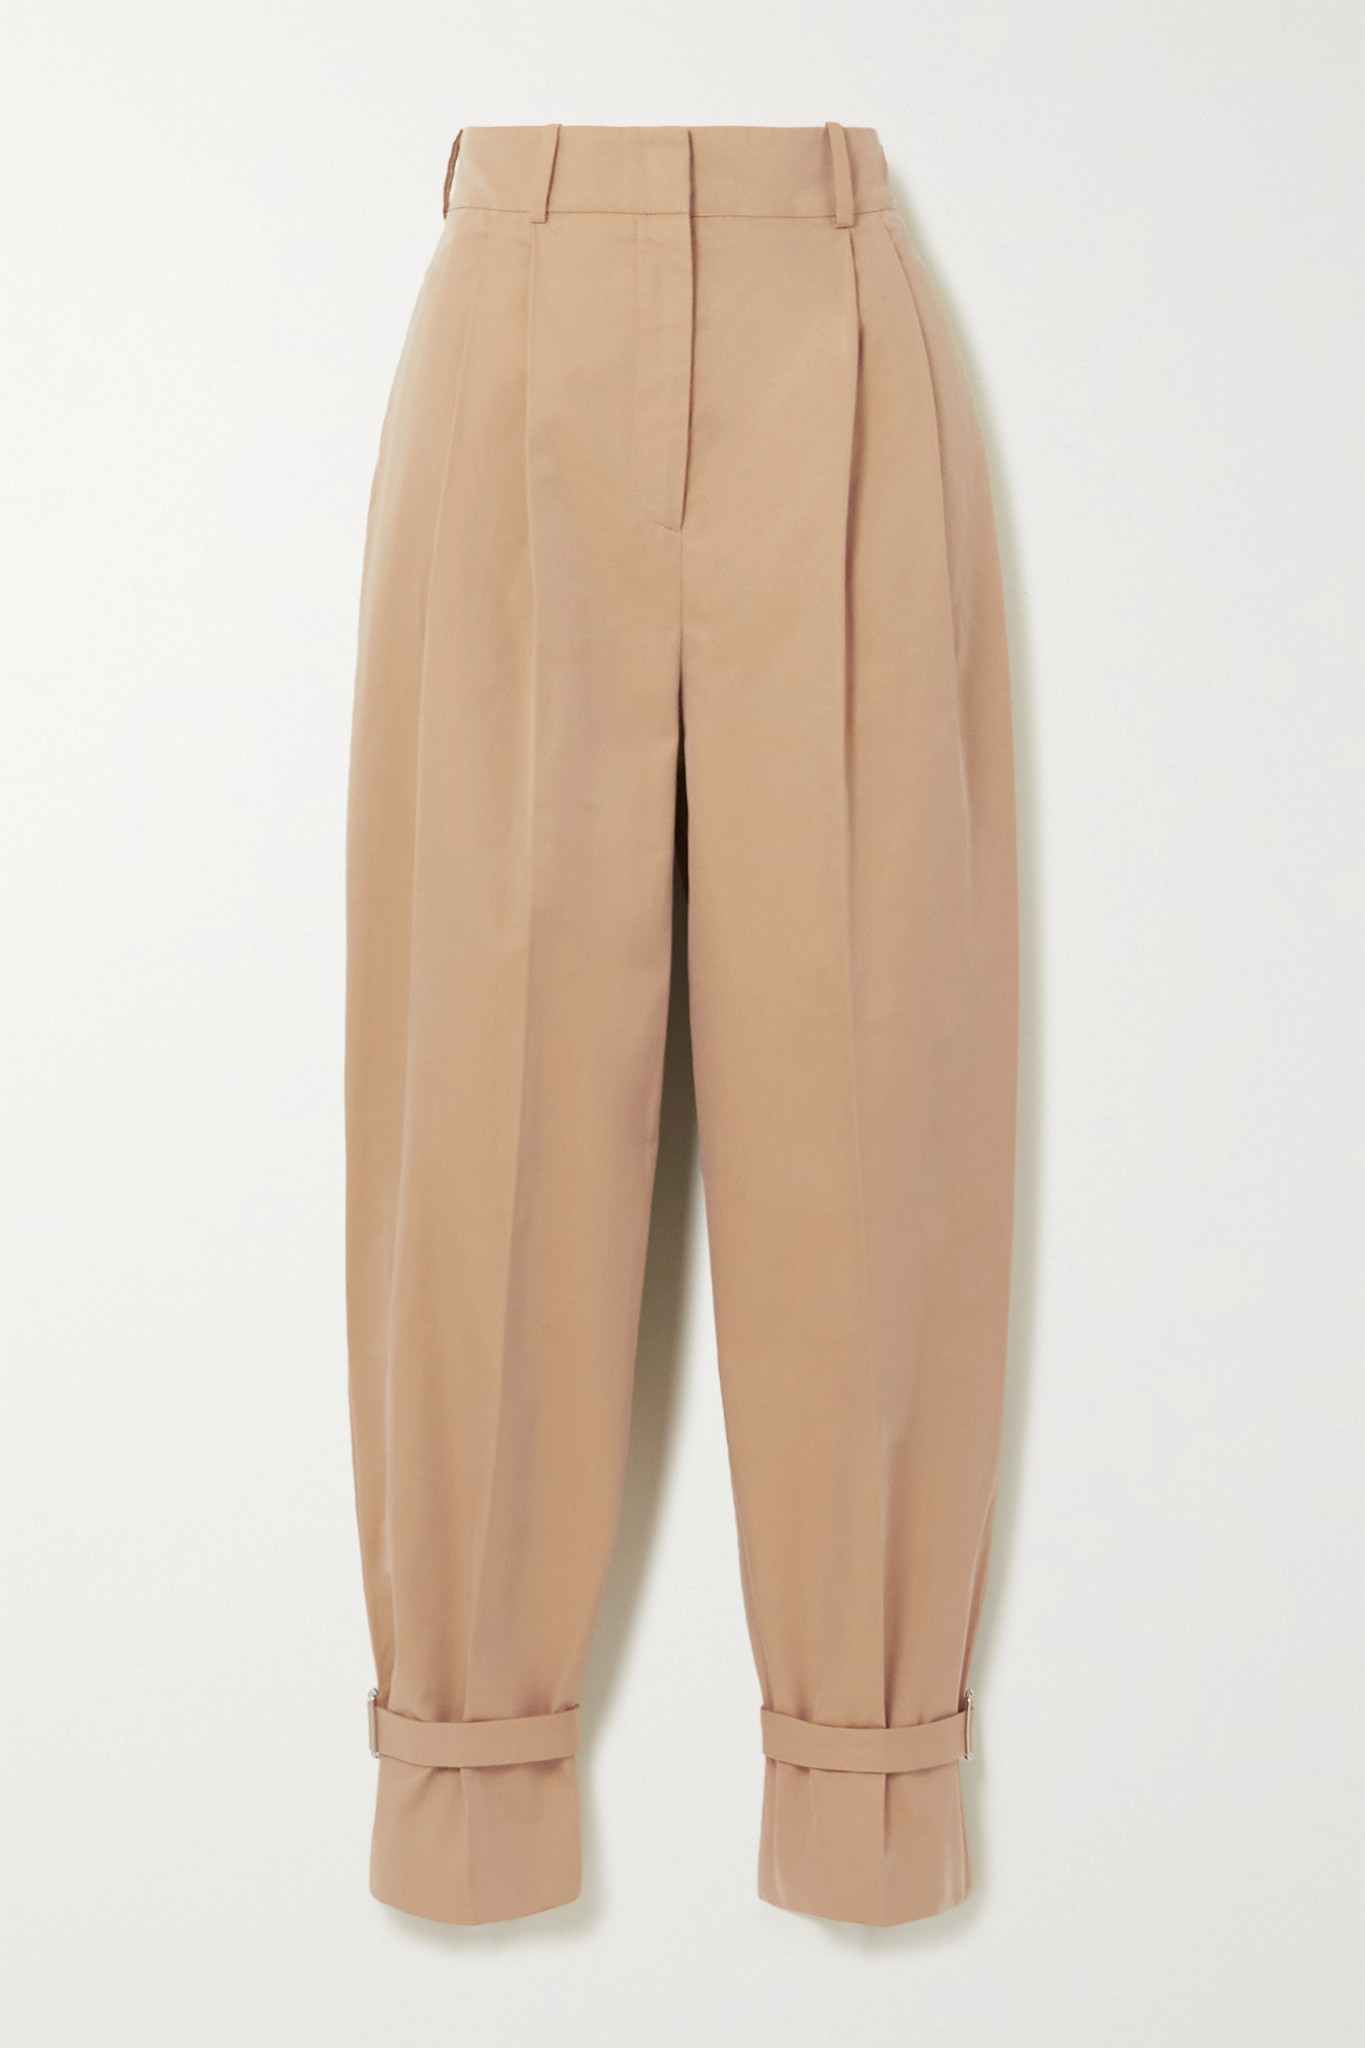 ALEXANDER MCQUEEN - Buckled Cotton-twill Tapered Pants - Brown - IT40